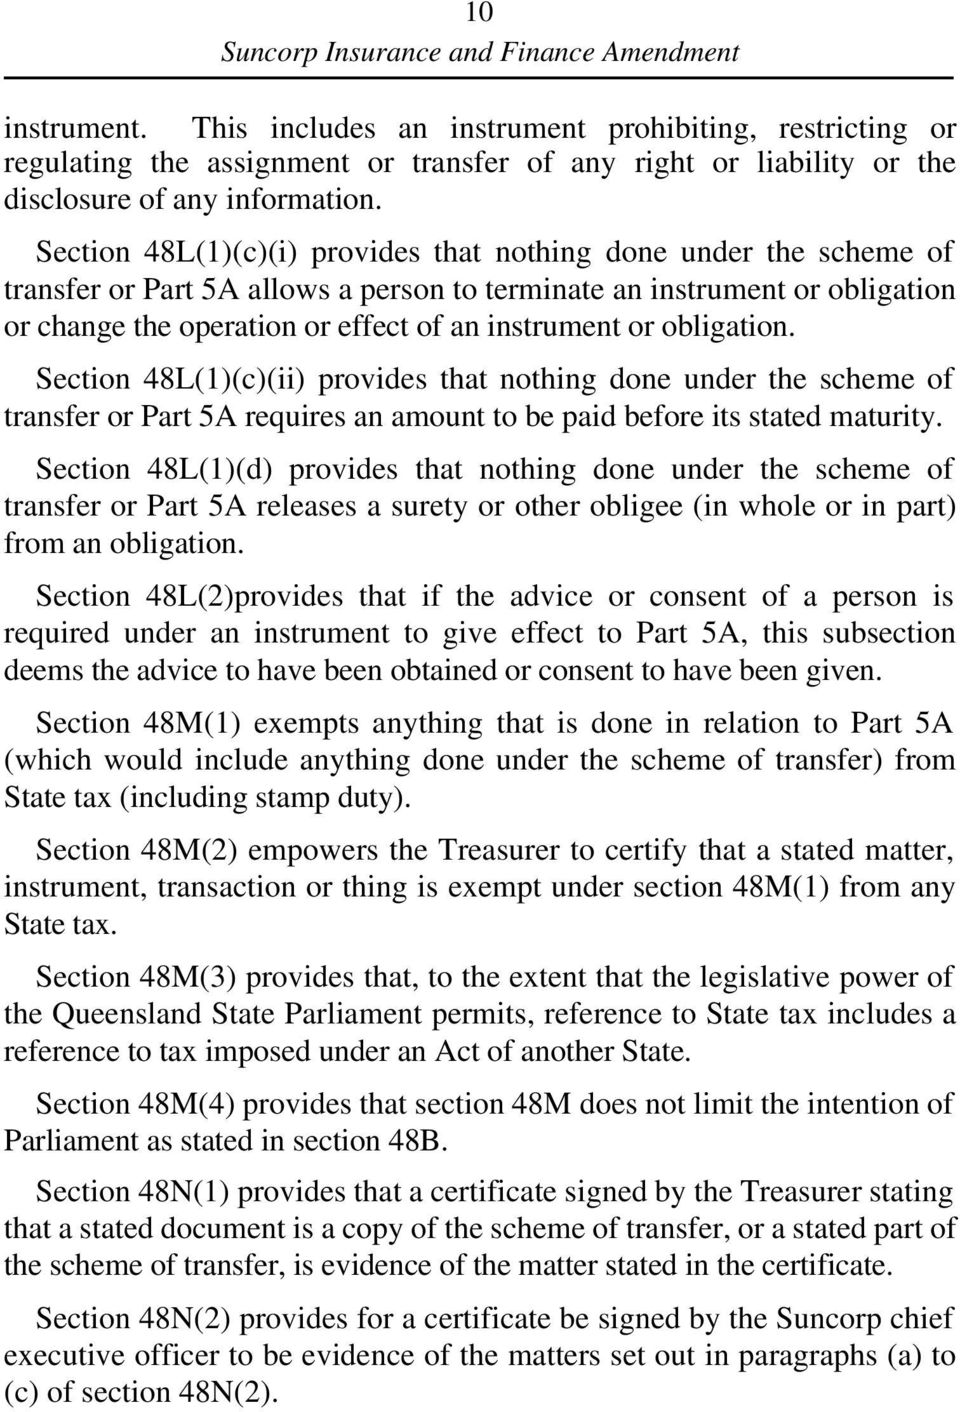 obligation. Section 48L(1)(c)(ii) provides that nothing done under the scheme of transfer or Part 5A requires an amount to be paid before its stated maturity.